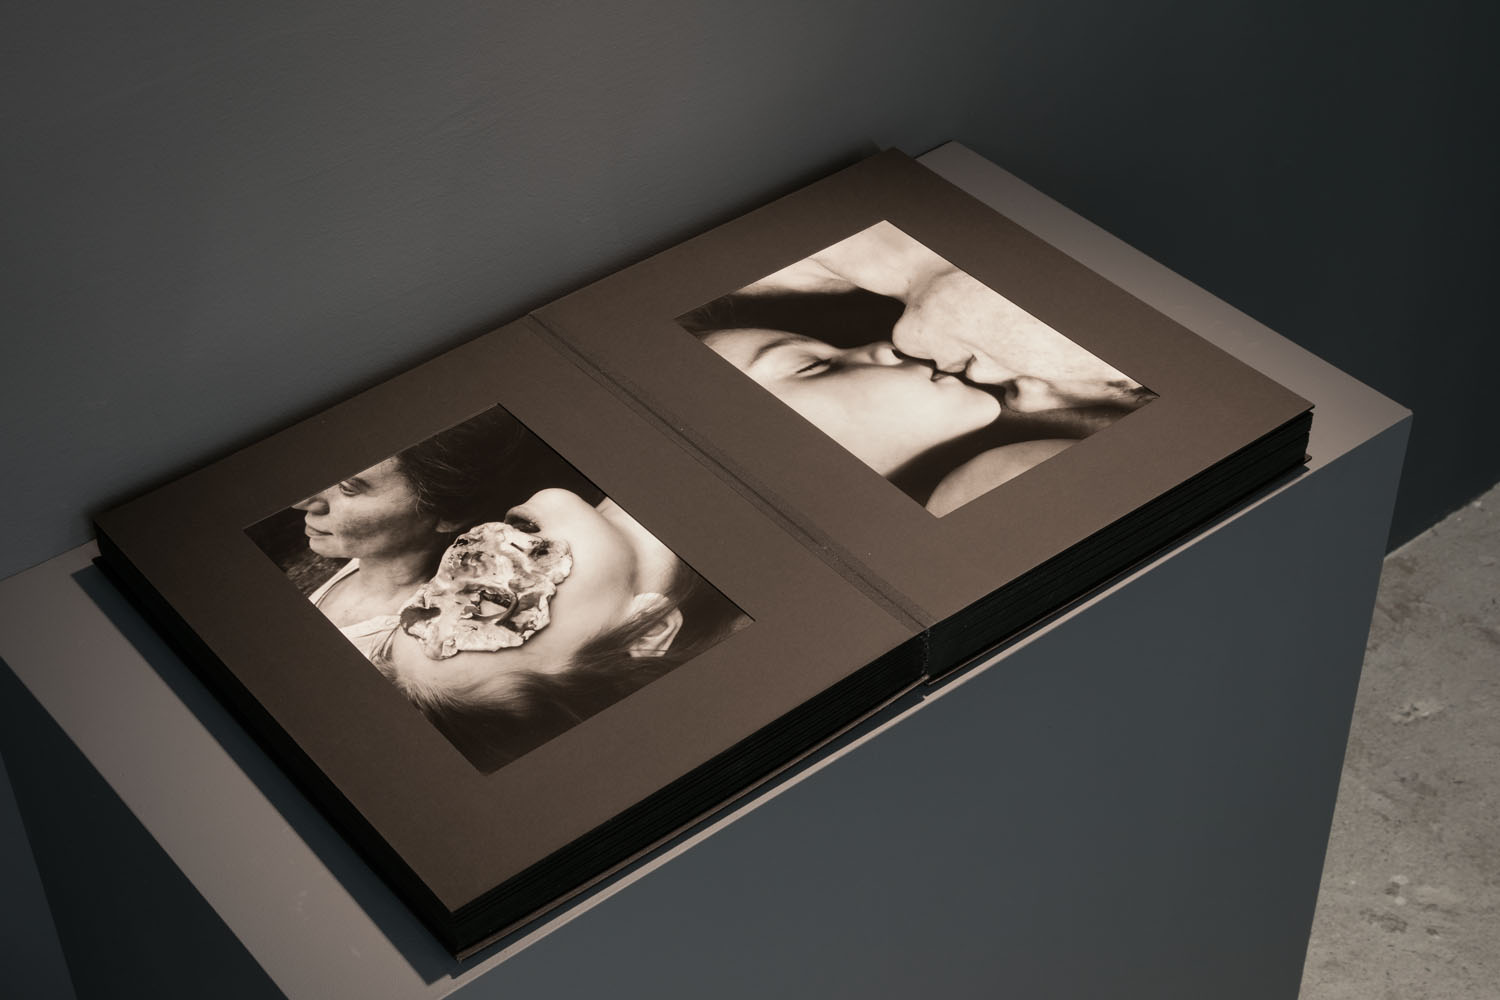 Aneta Grzeszykowska   Mama , 2018  50 photographs in paper album, cloth binding  17.52 x 13.58 x 3.74 inches  Edition of 5 + I A.P.